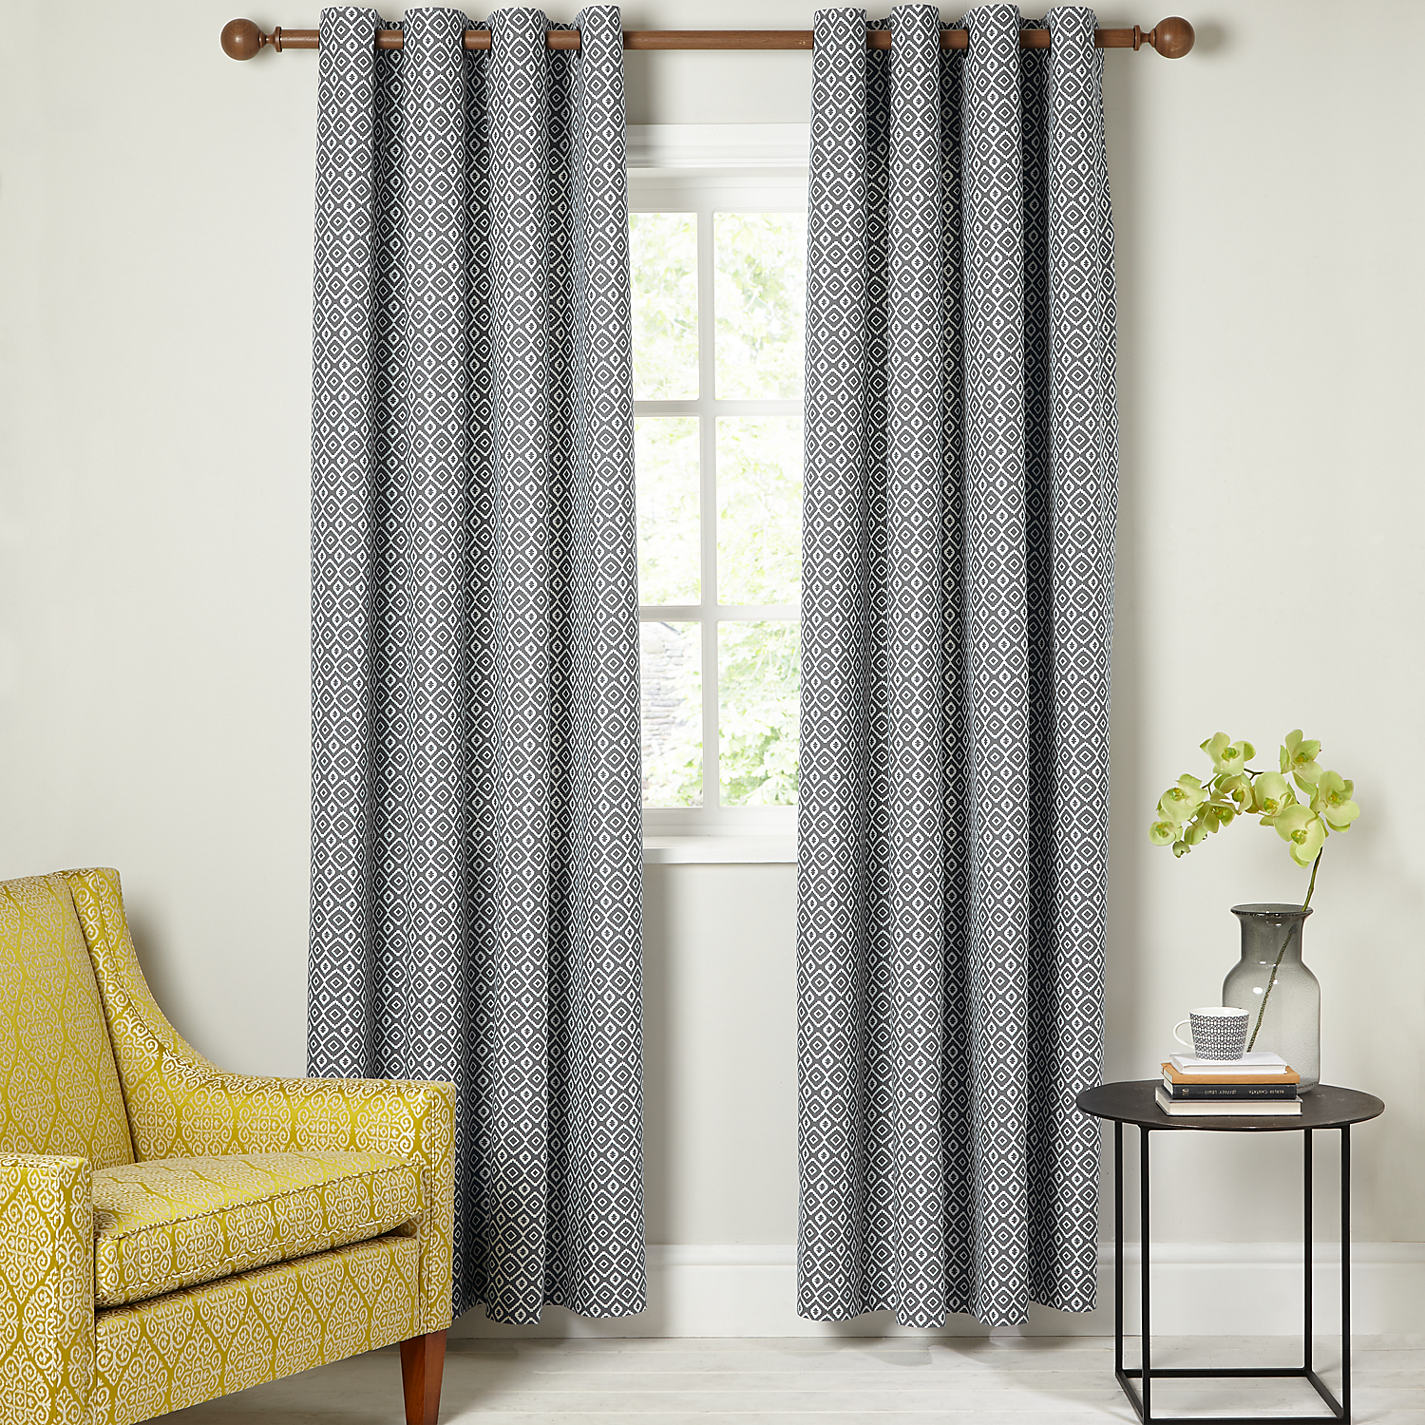 Buy John Lewis Nazca Lined Eyelet Curtains John Lewis - John lewis curtains grey